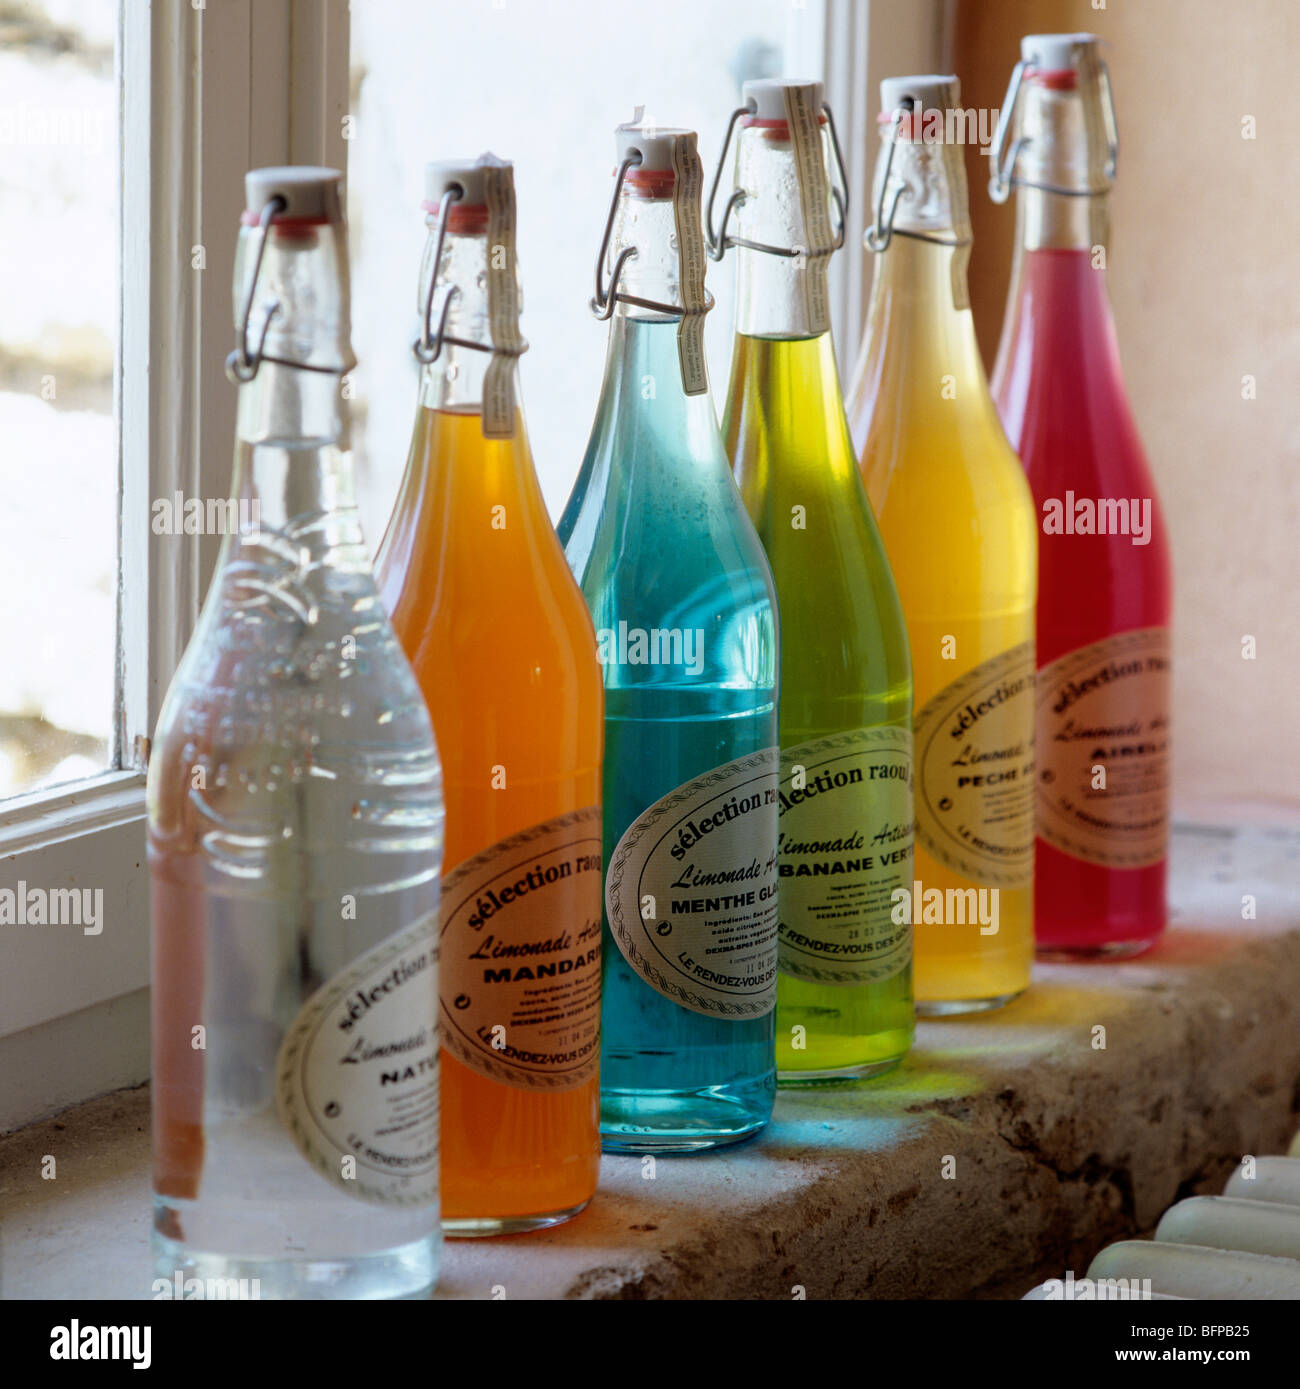 Row of glass bottles filled with multicoloured liquids on windowsill / ledge Stock Photo